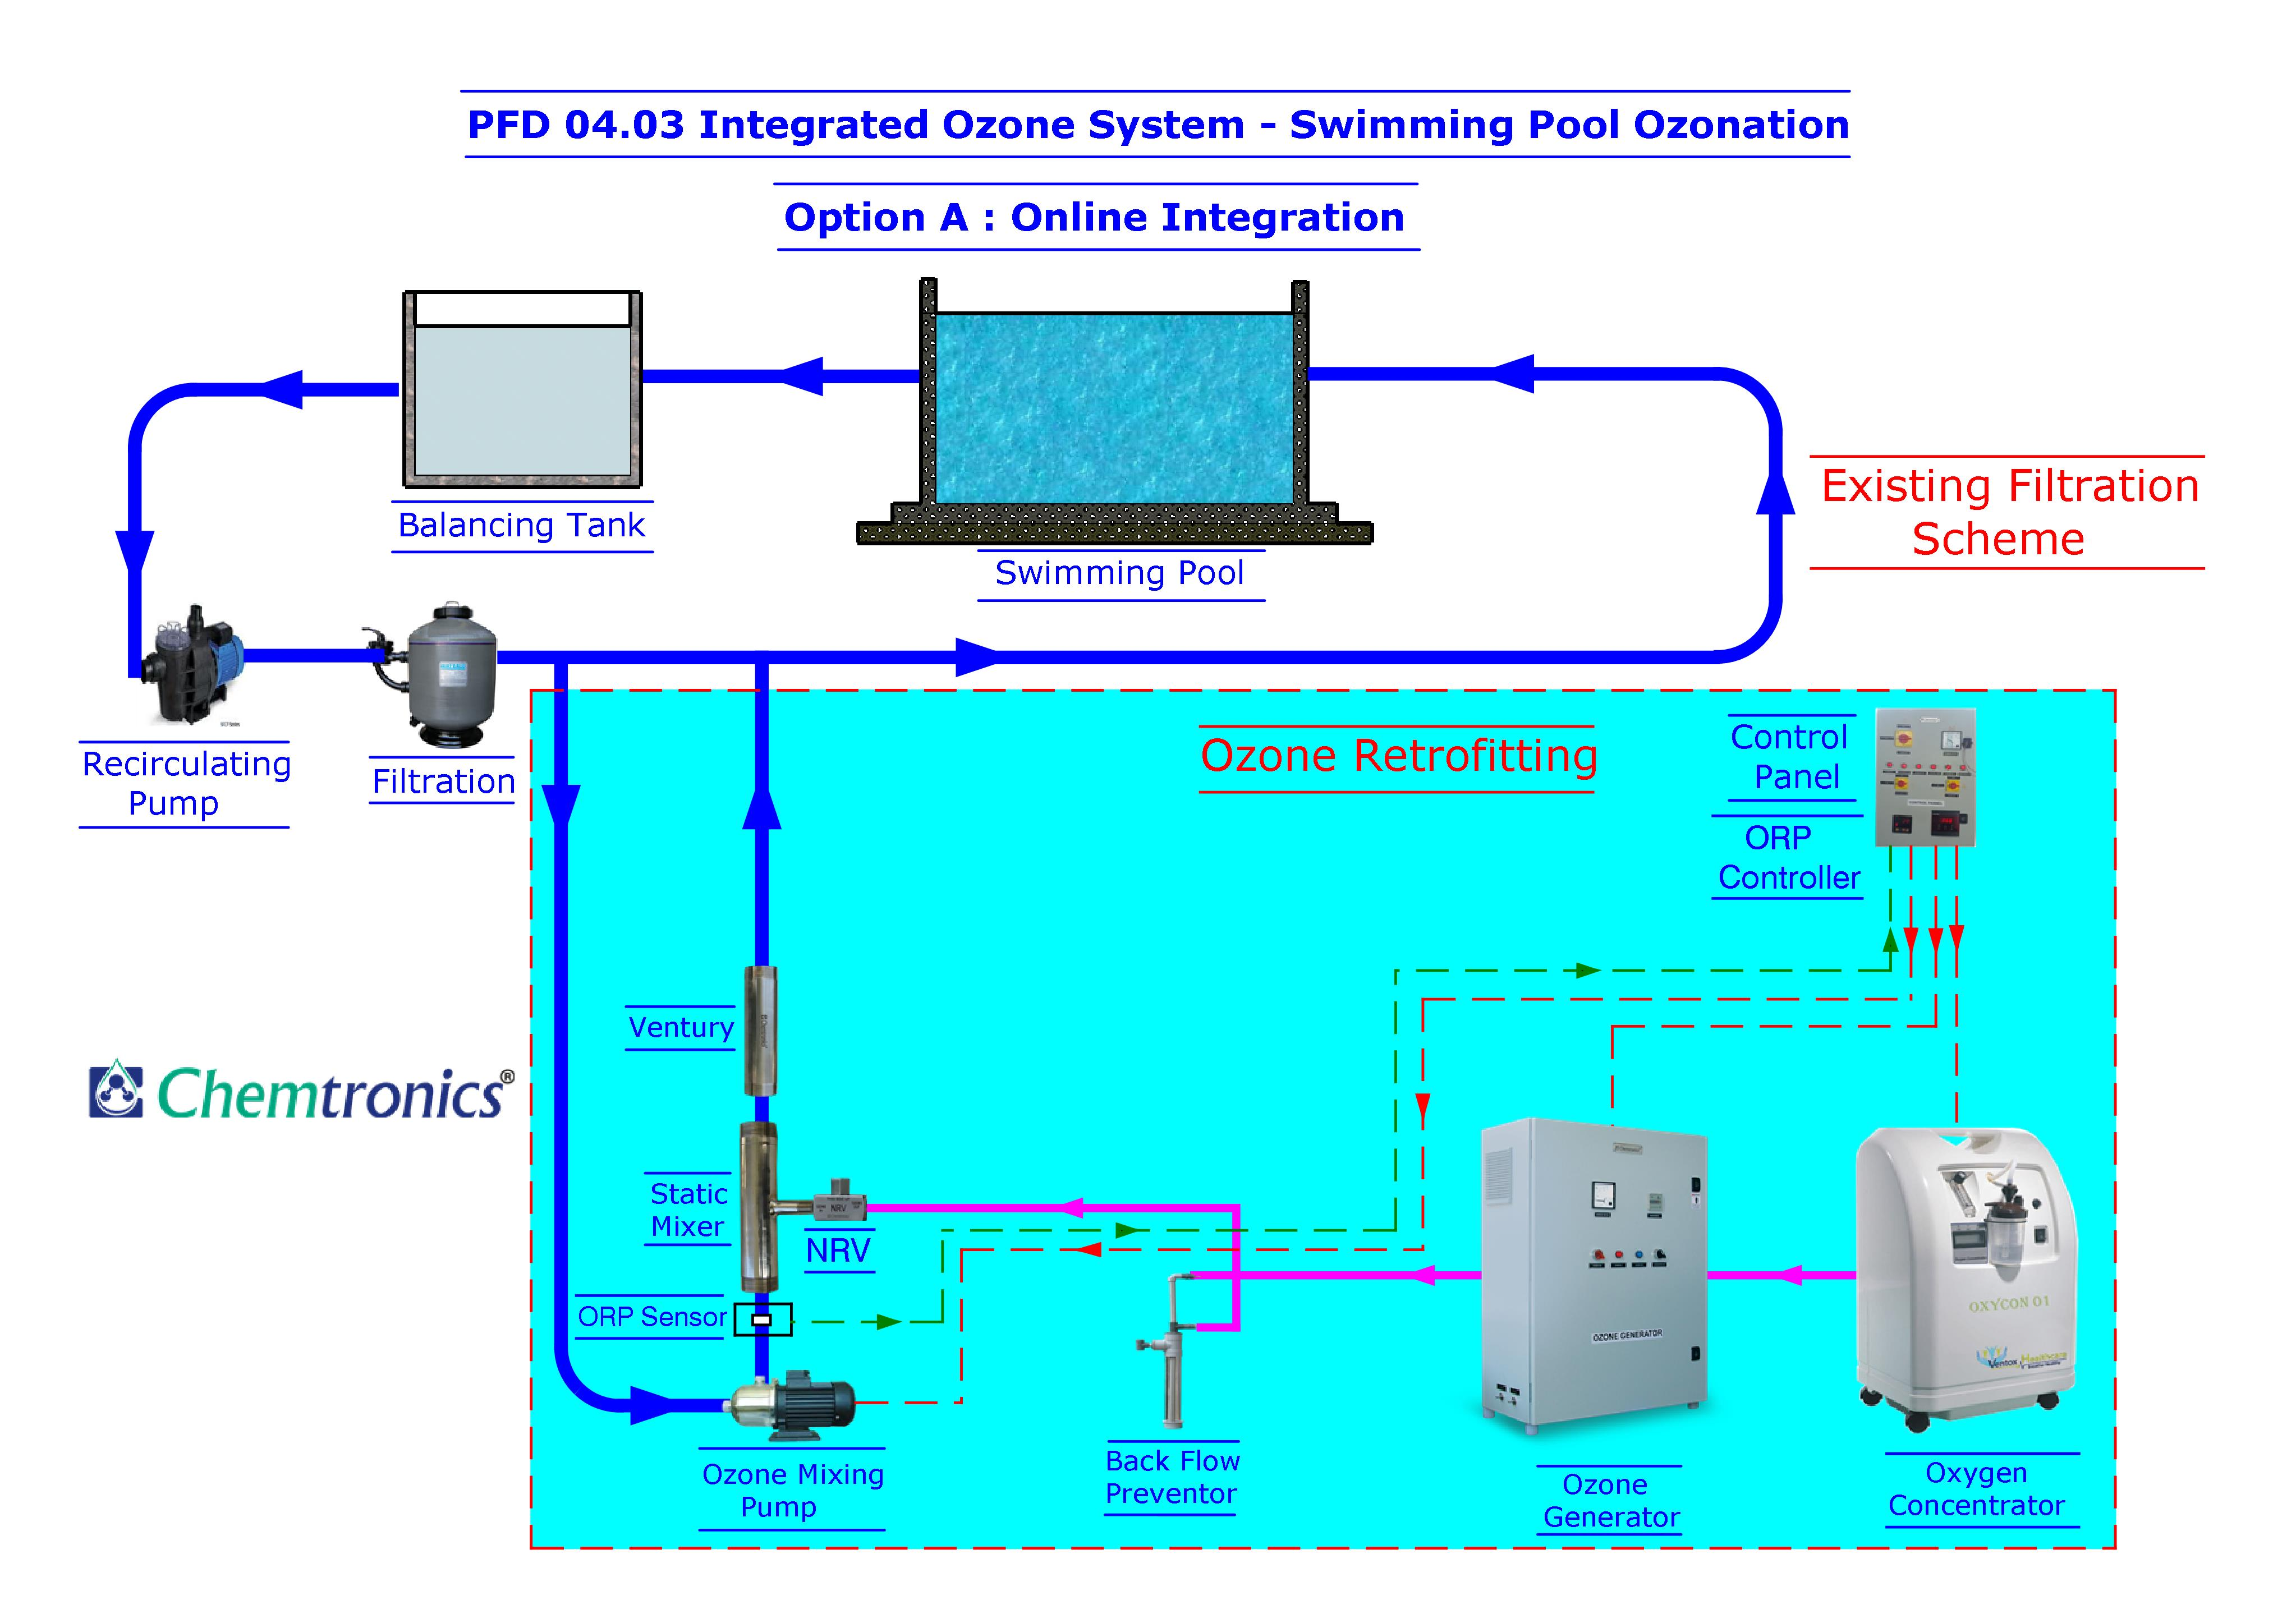 Ozonation Process Flow Diagrams Diagram Pfd Mumbai Pool Schematic 0403 Option A Online Integration For Swimming